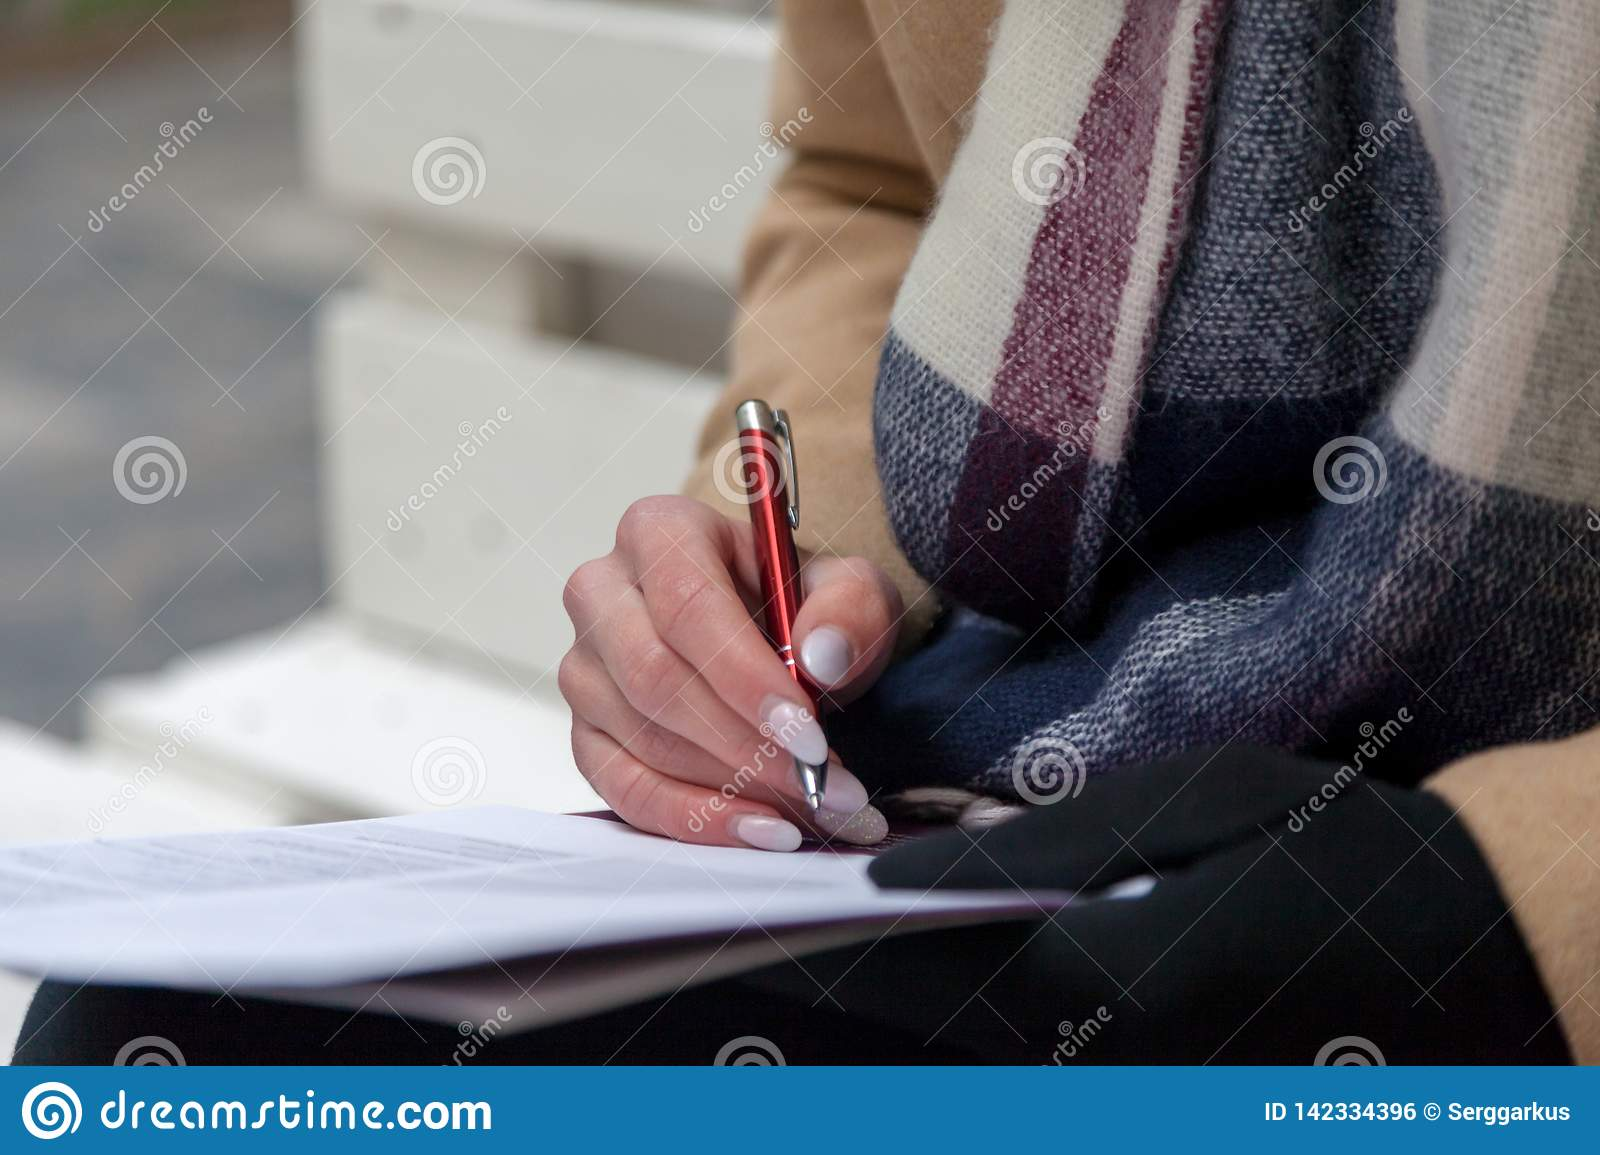 An image of a hand and pen completing a form.